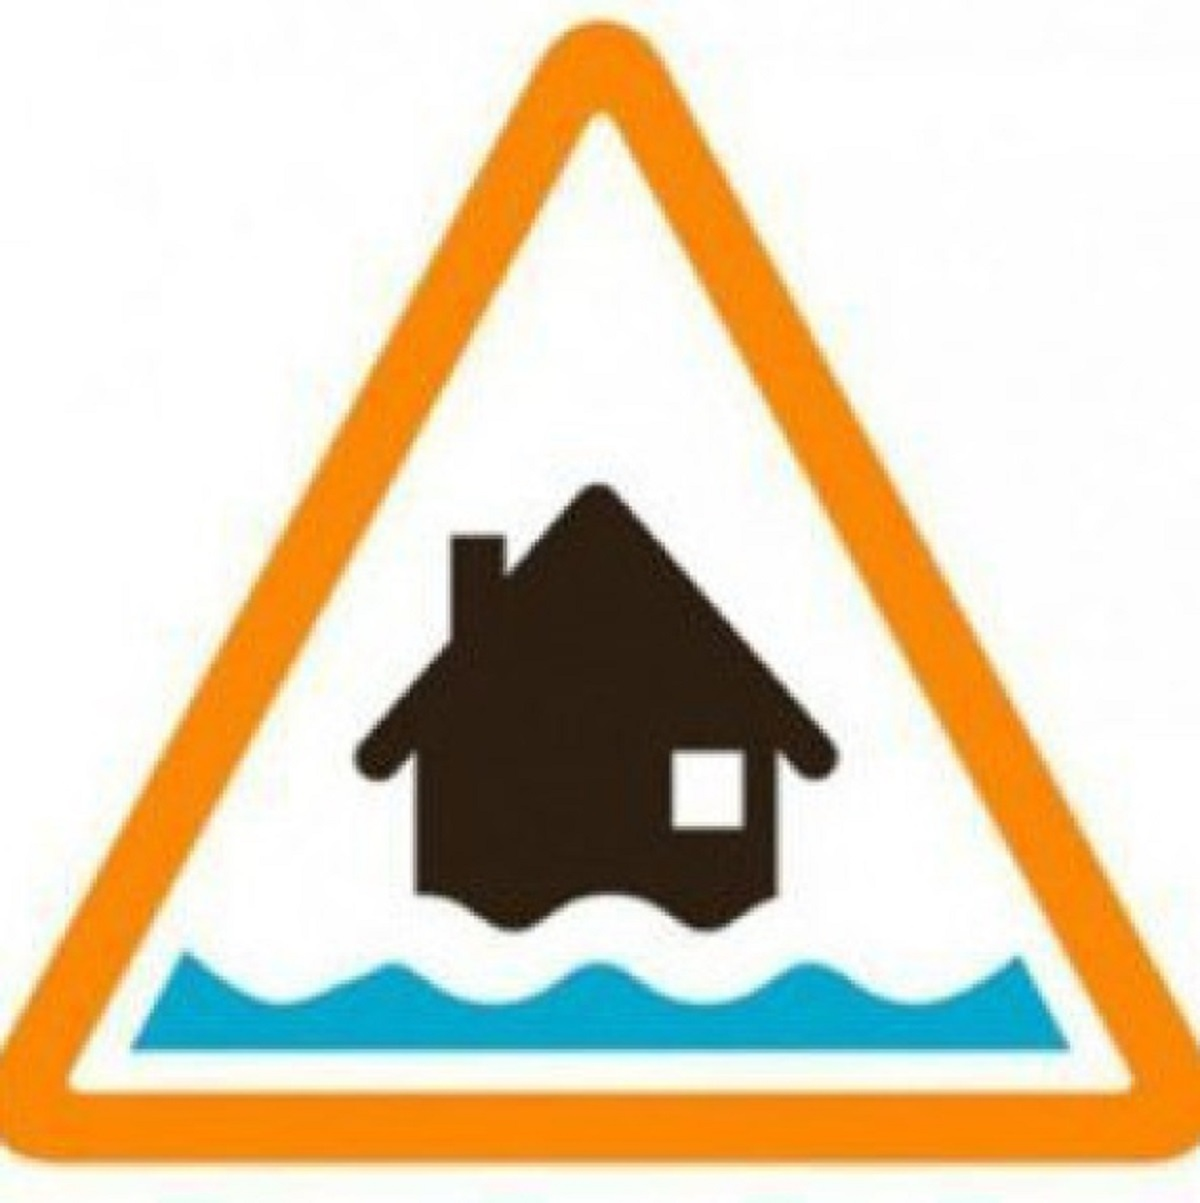 Two flood warnings issued for Worcestershire